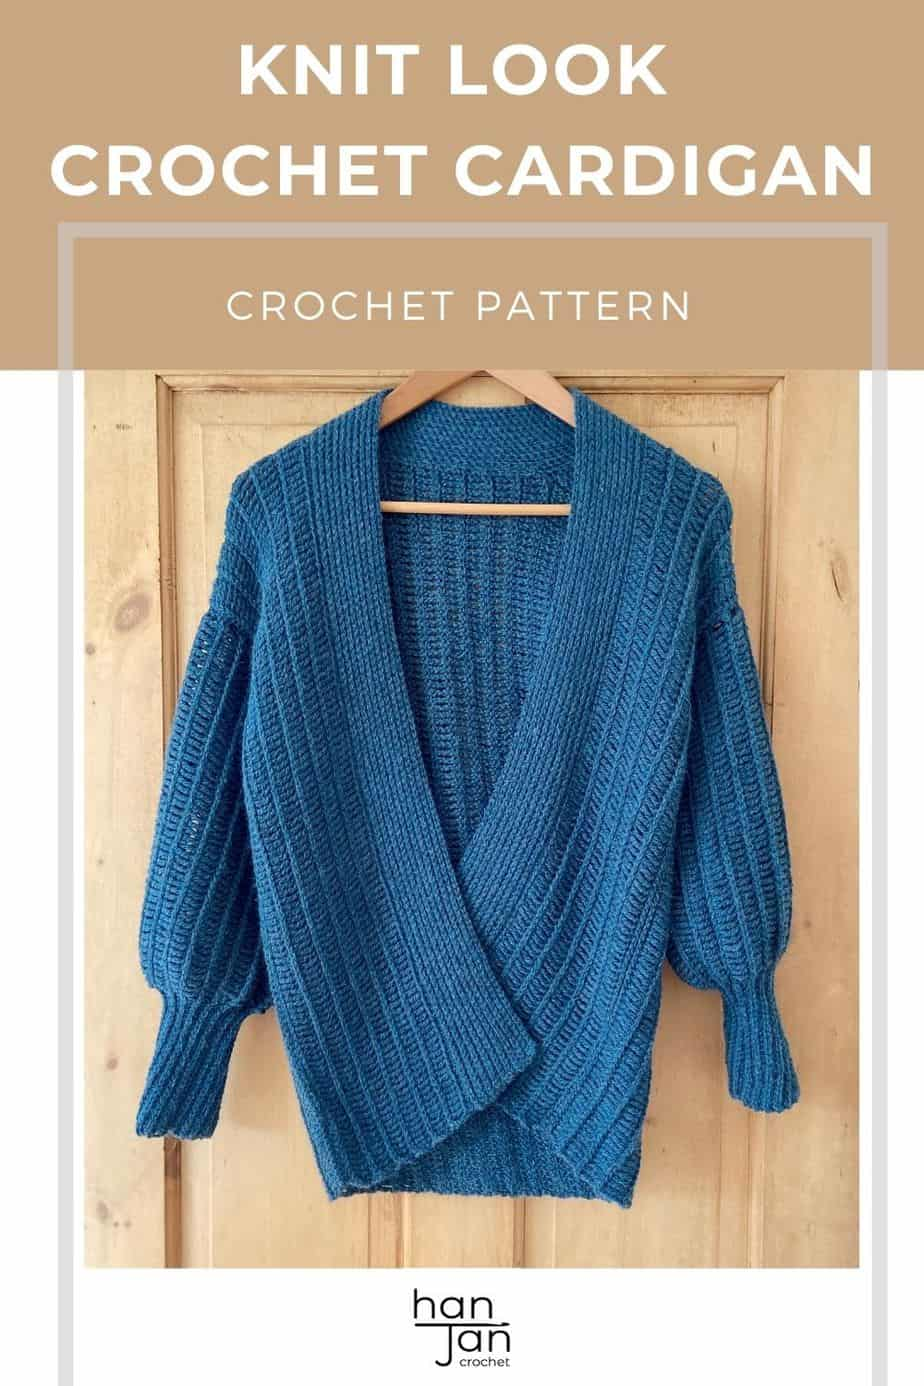 knit-look crochet cardigan hanging on a pine door. It has balloon sleeves and a ribbed collar.